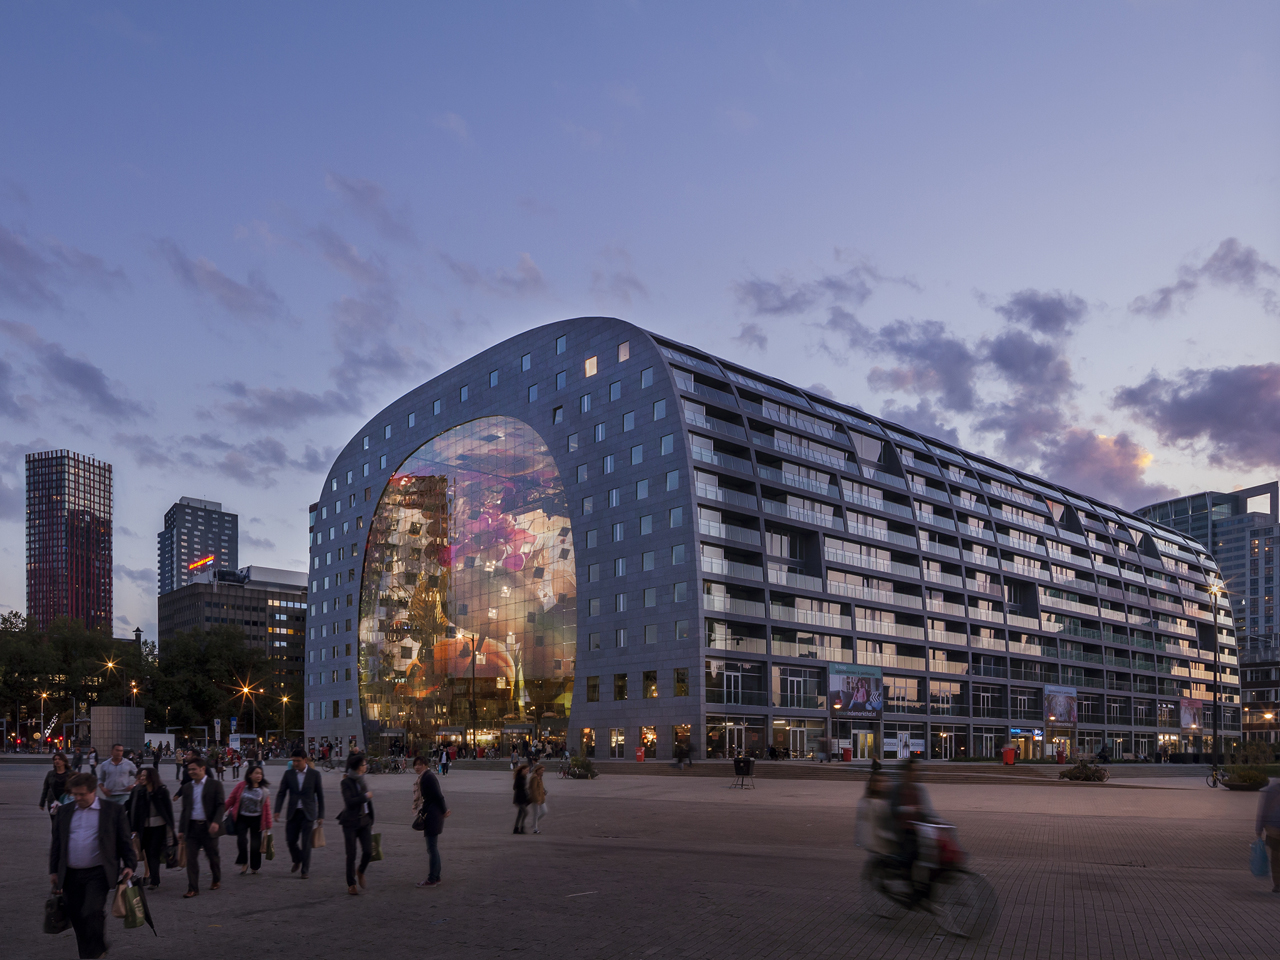 Jan Knikker to lecture on Markthal effect in Ludwigsburg, Germany, on November 13th